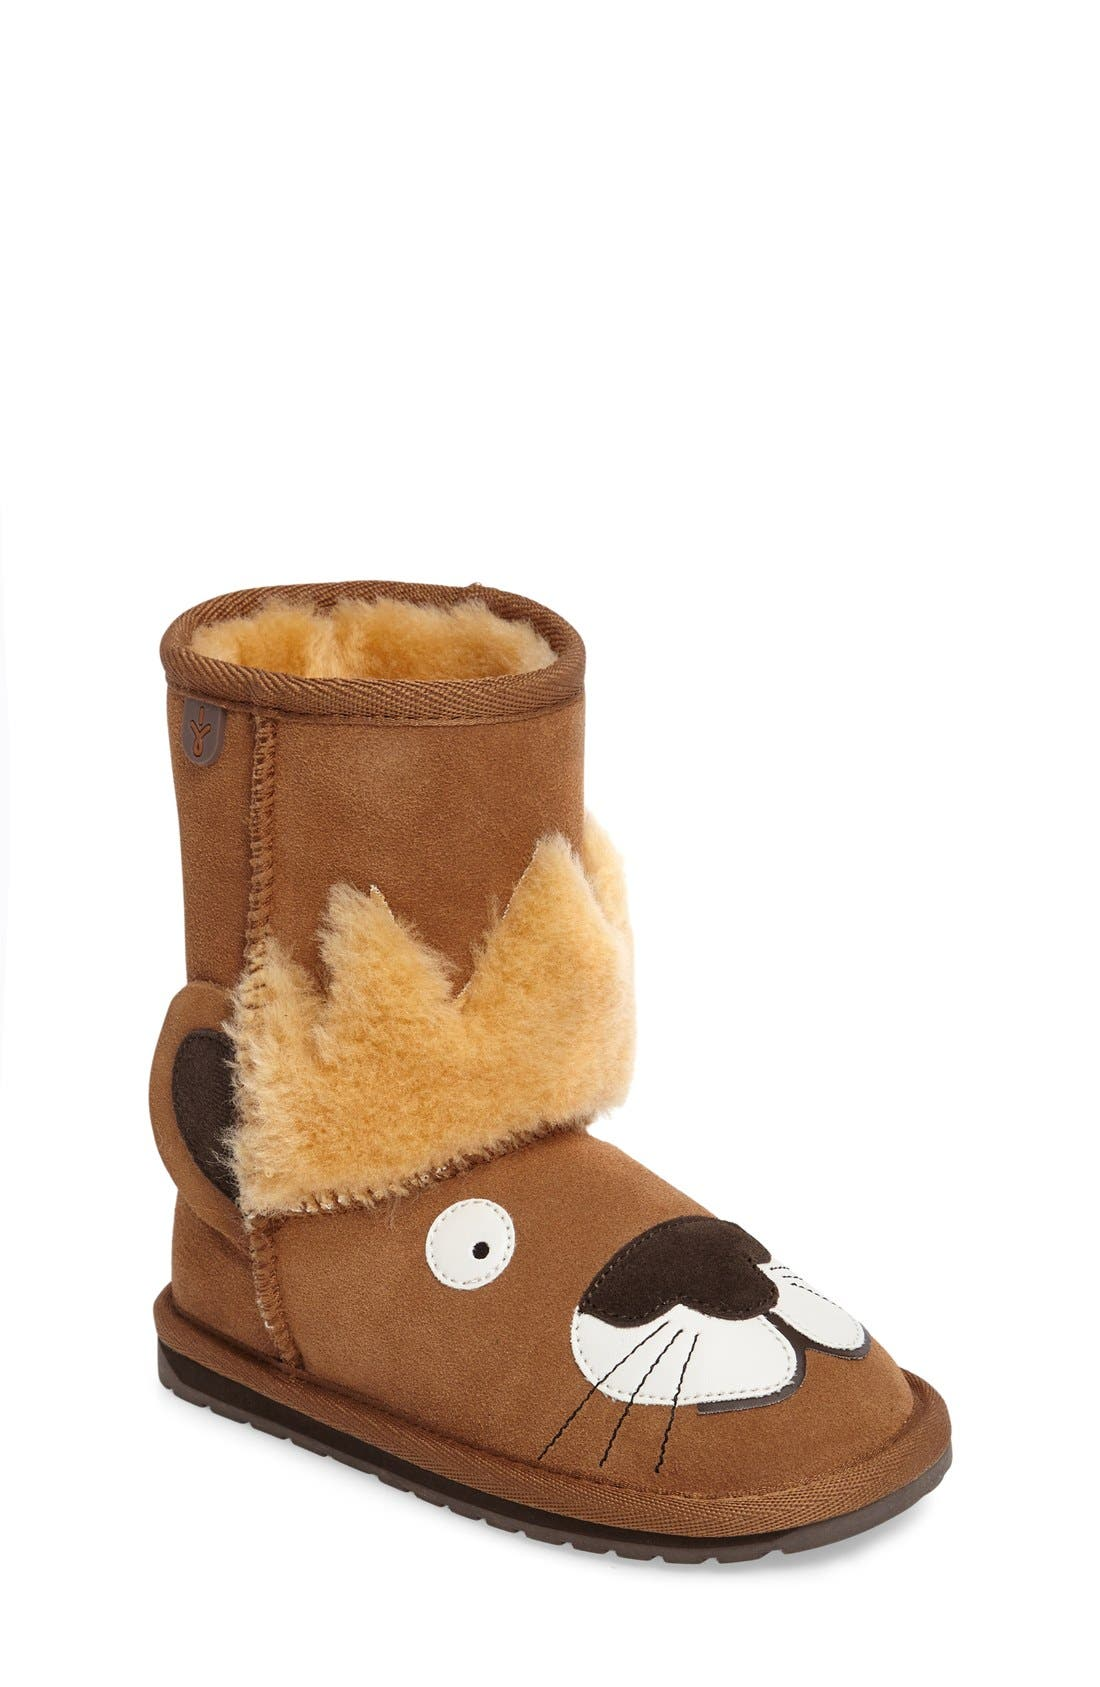 EMU AUSTRALIA Little Creatures - Leo Lion Boot